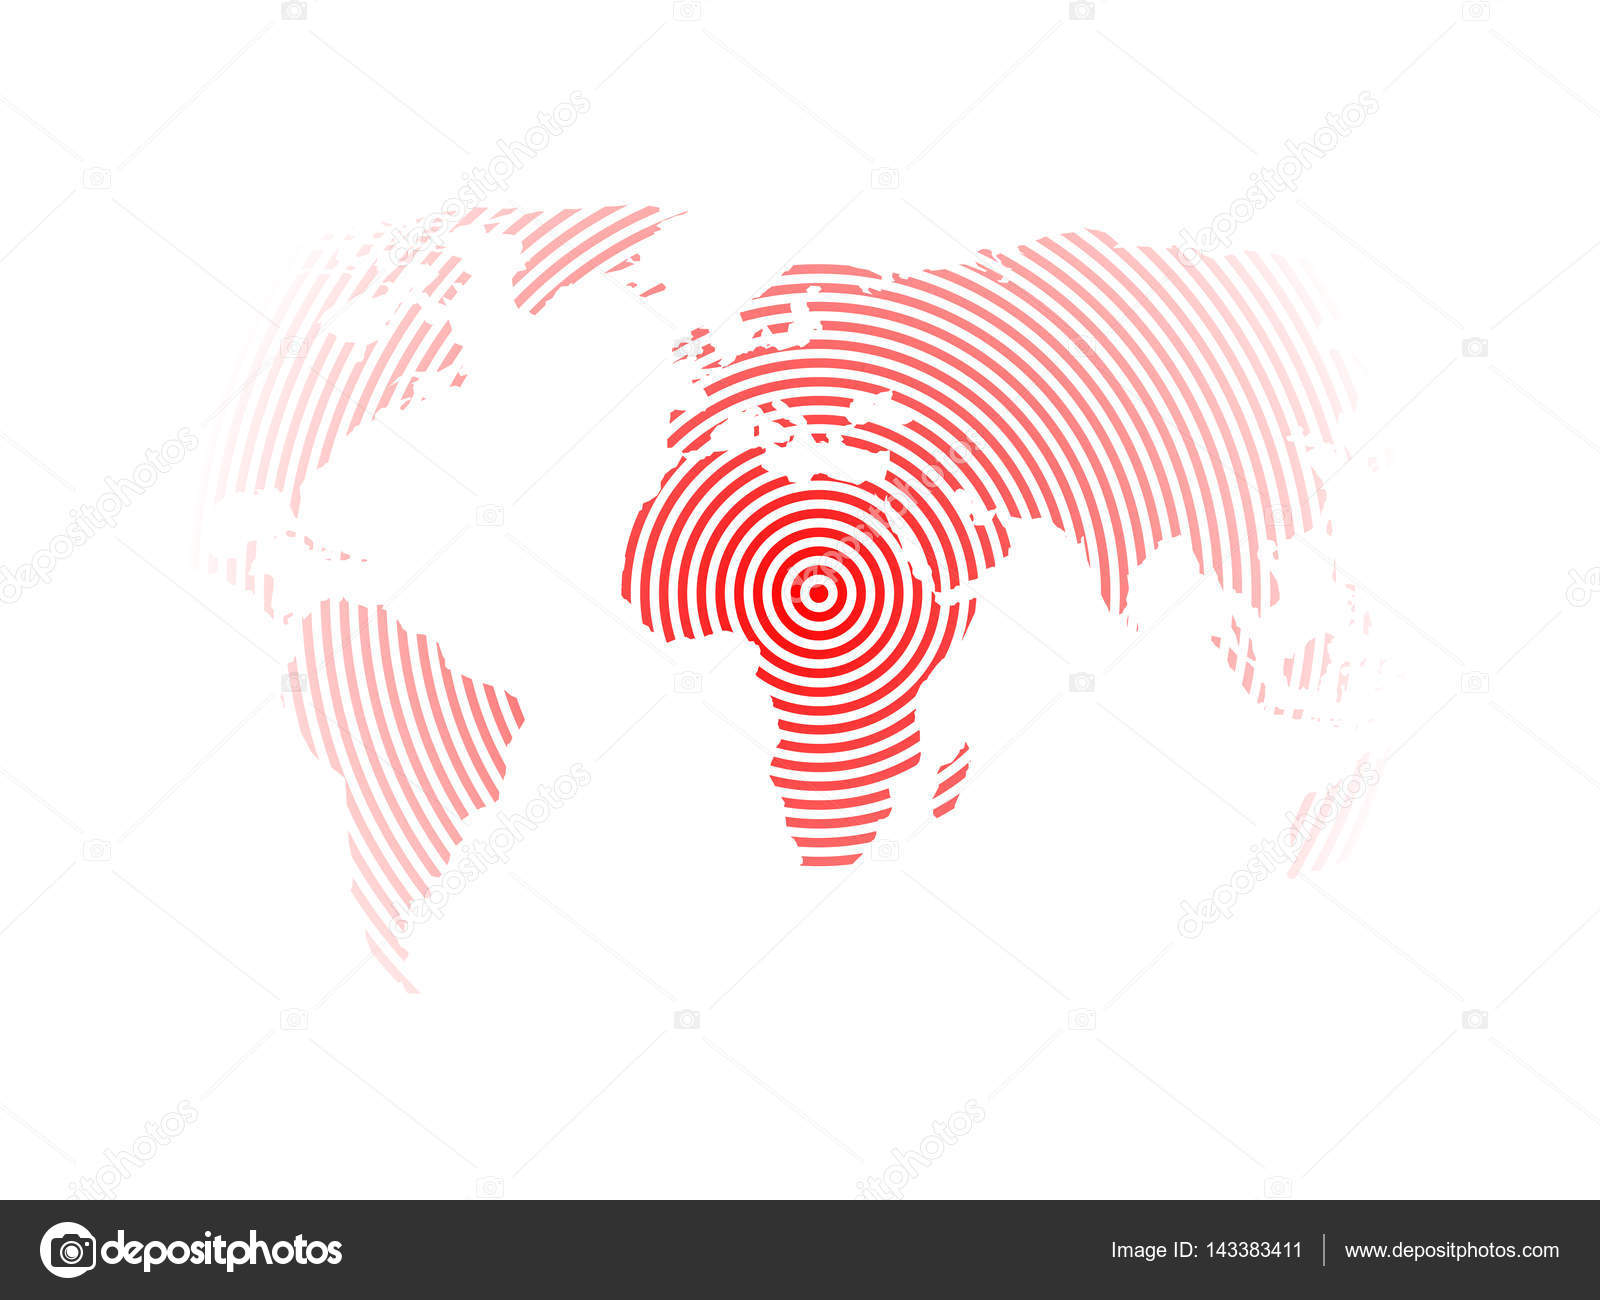 World map of red concentric rings on white background earthquake world map of red concentric rings on white background earthquake epicentre theme modern design vector wallpaper vector by pyty gumiabroncs Gallery